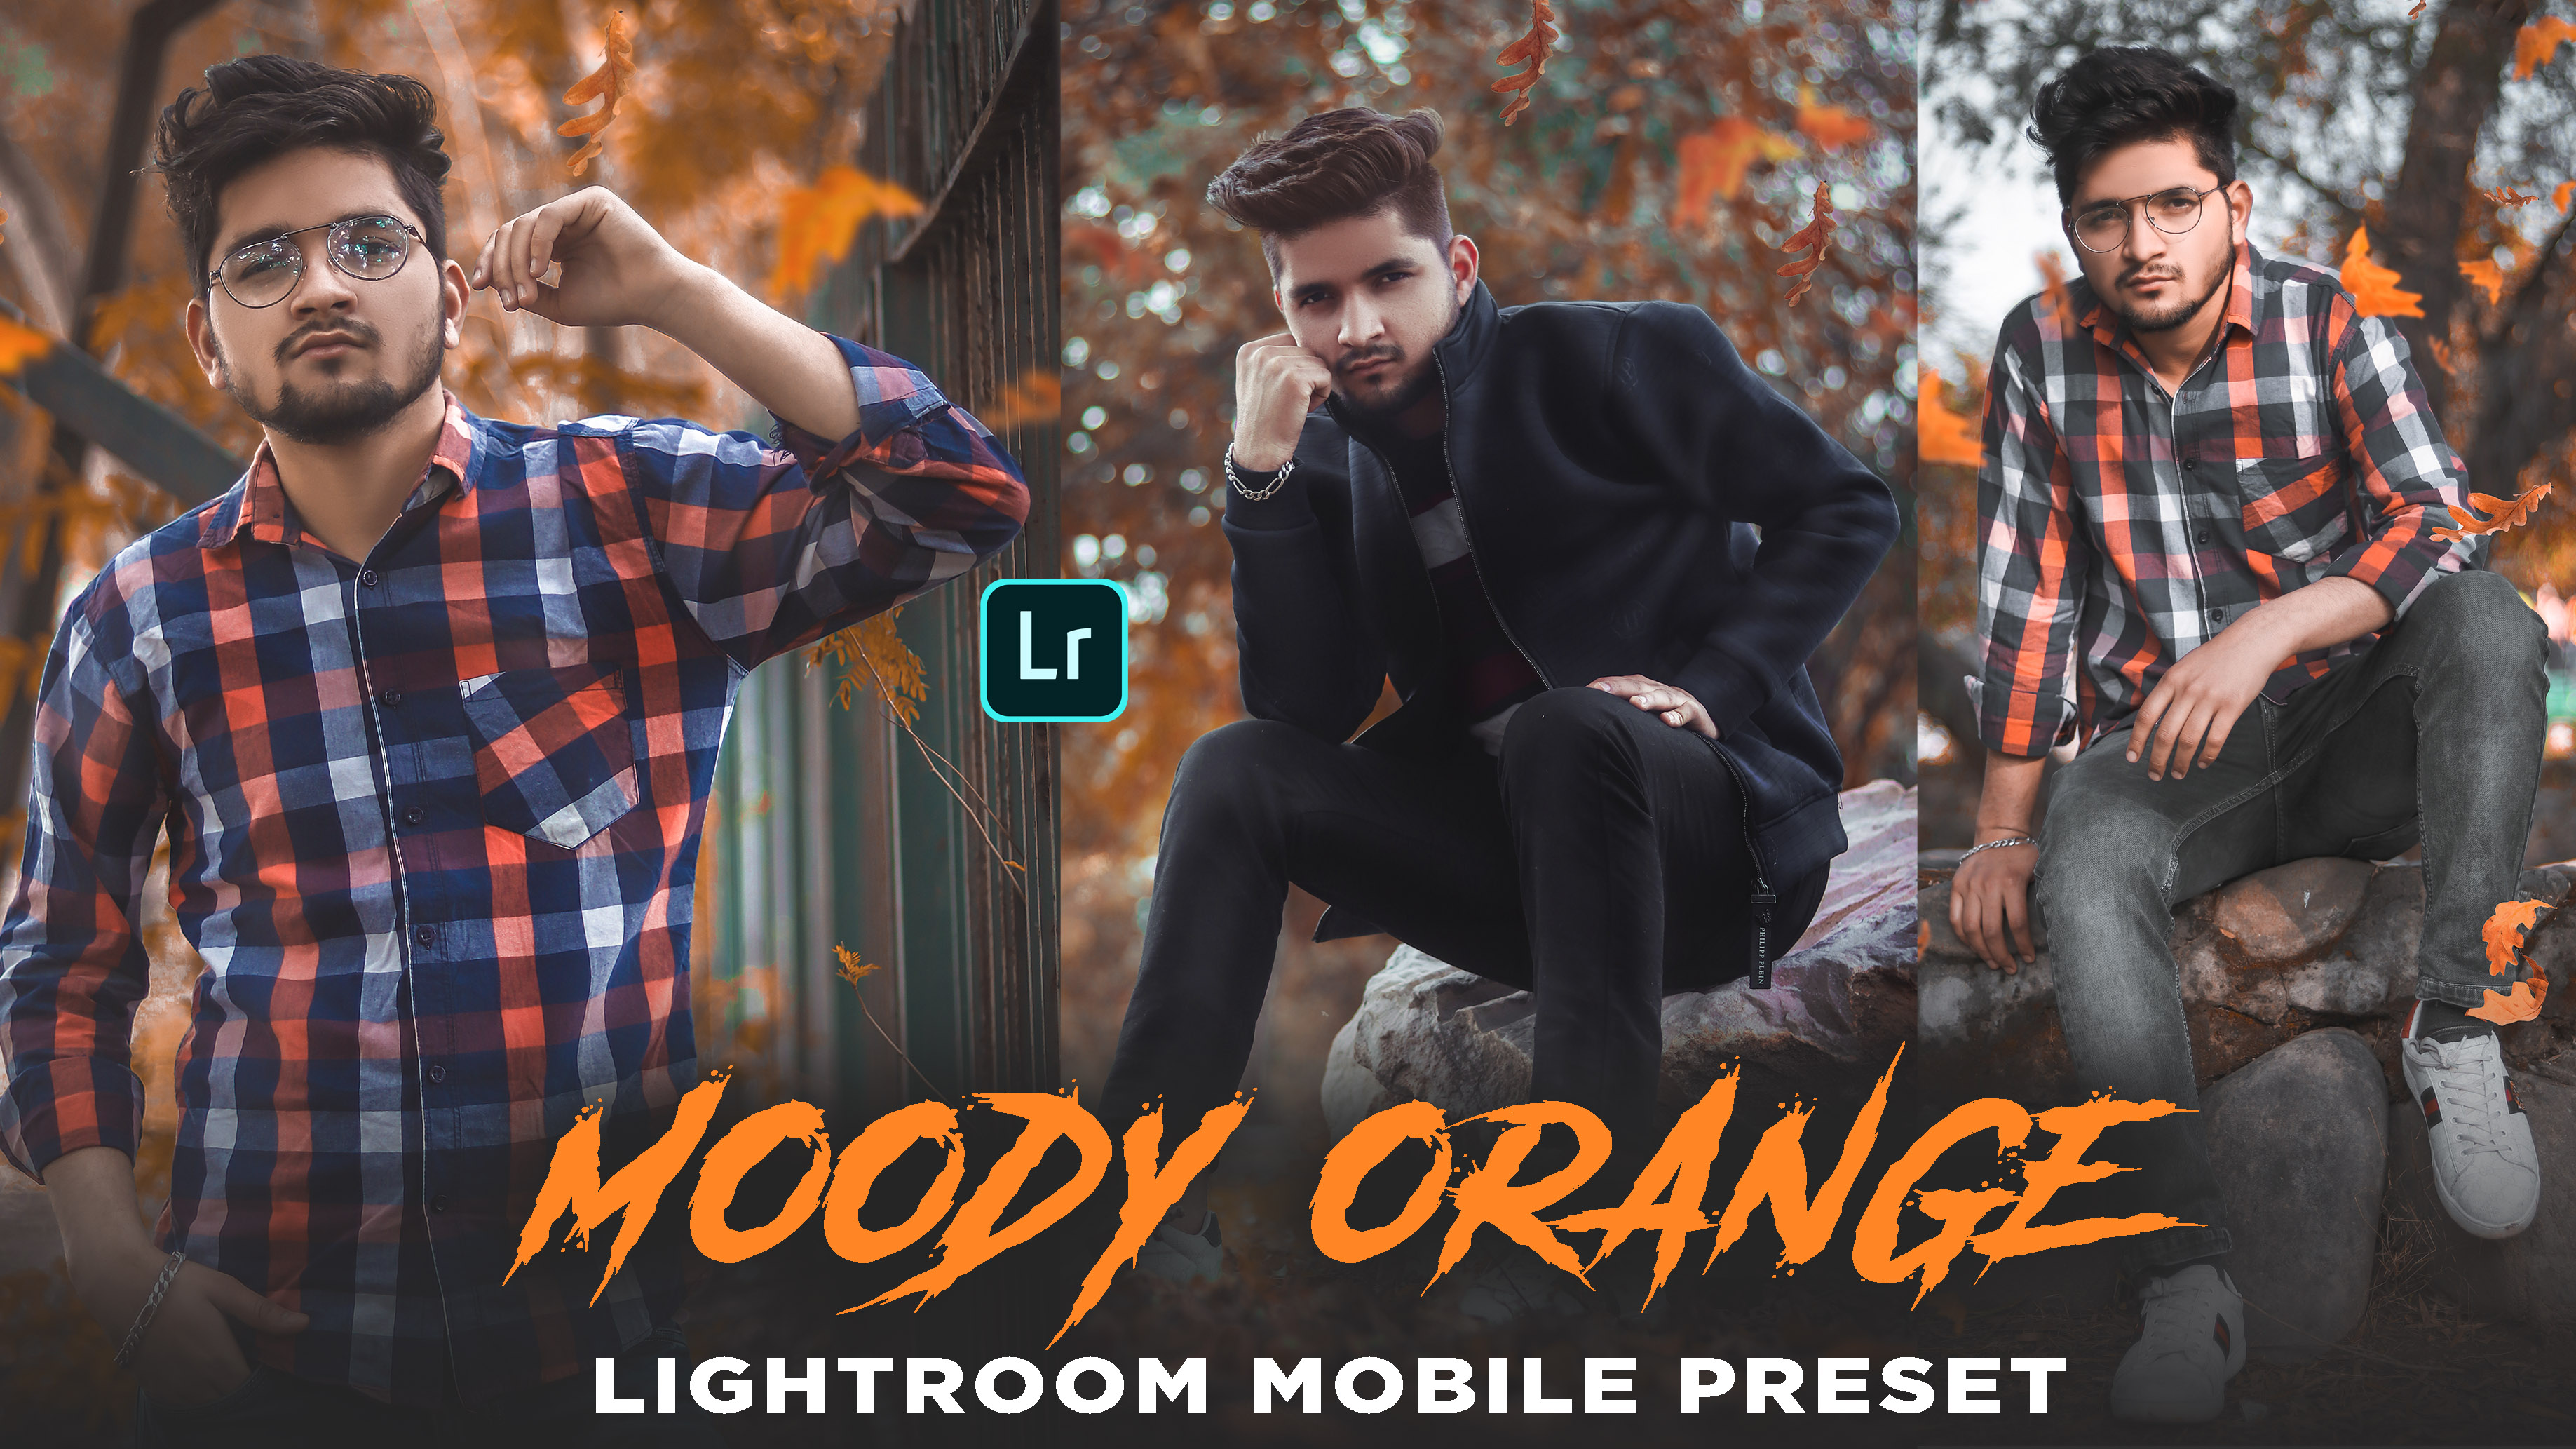 moody orange lightroom preset download - FREE lightroom